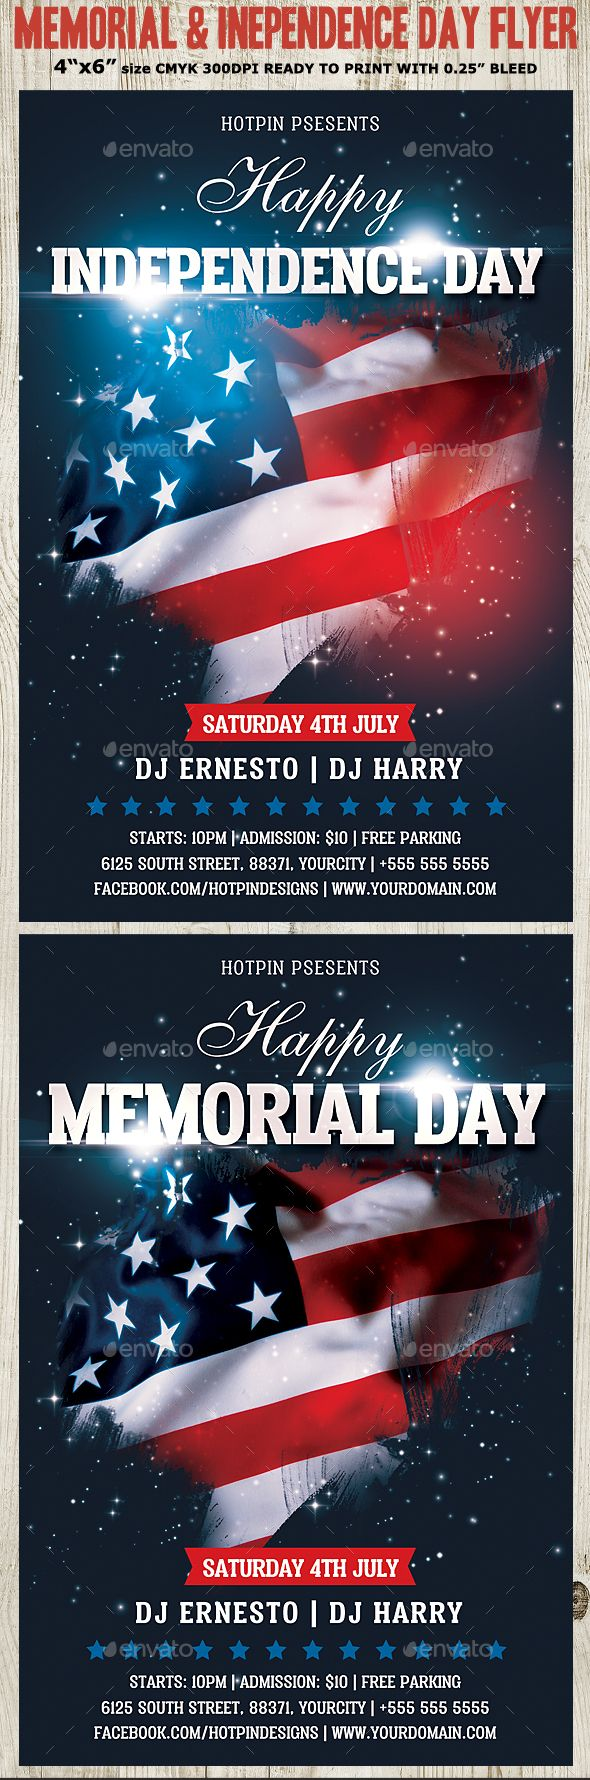 Independence Day Flyer | Memorial Independence Day Flyer Template Pinterest Flyer